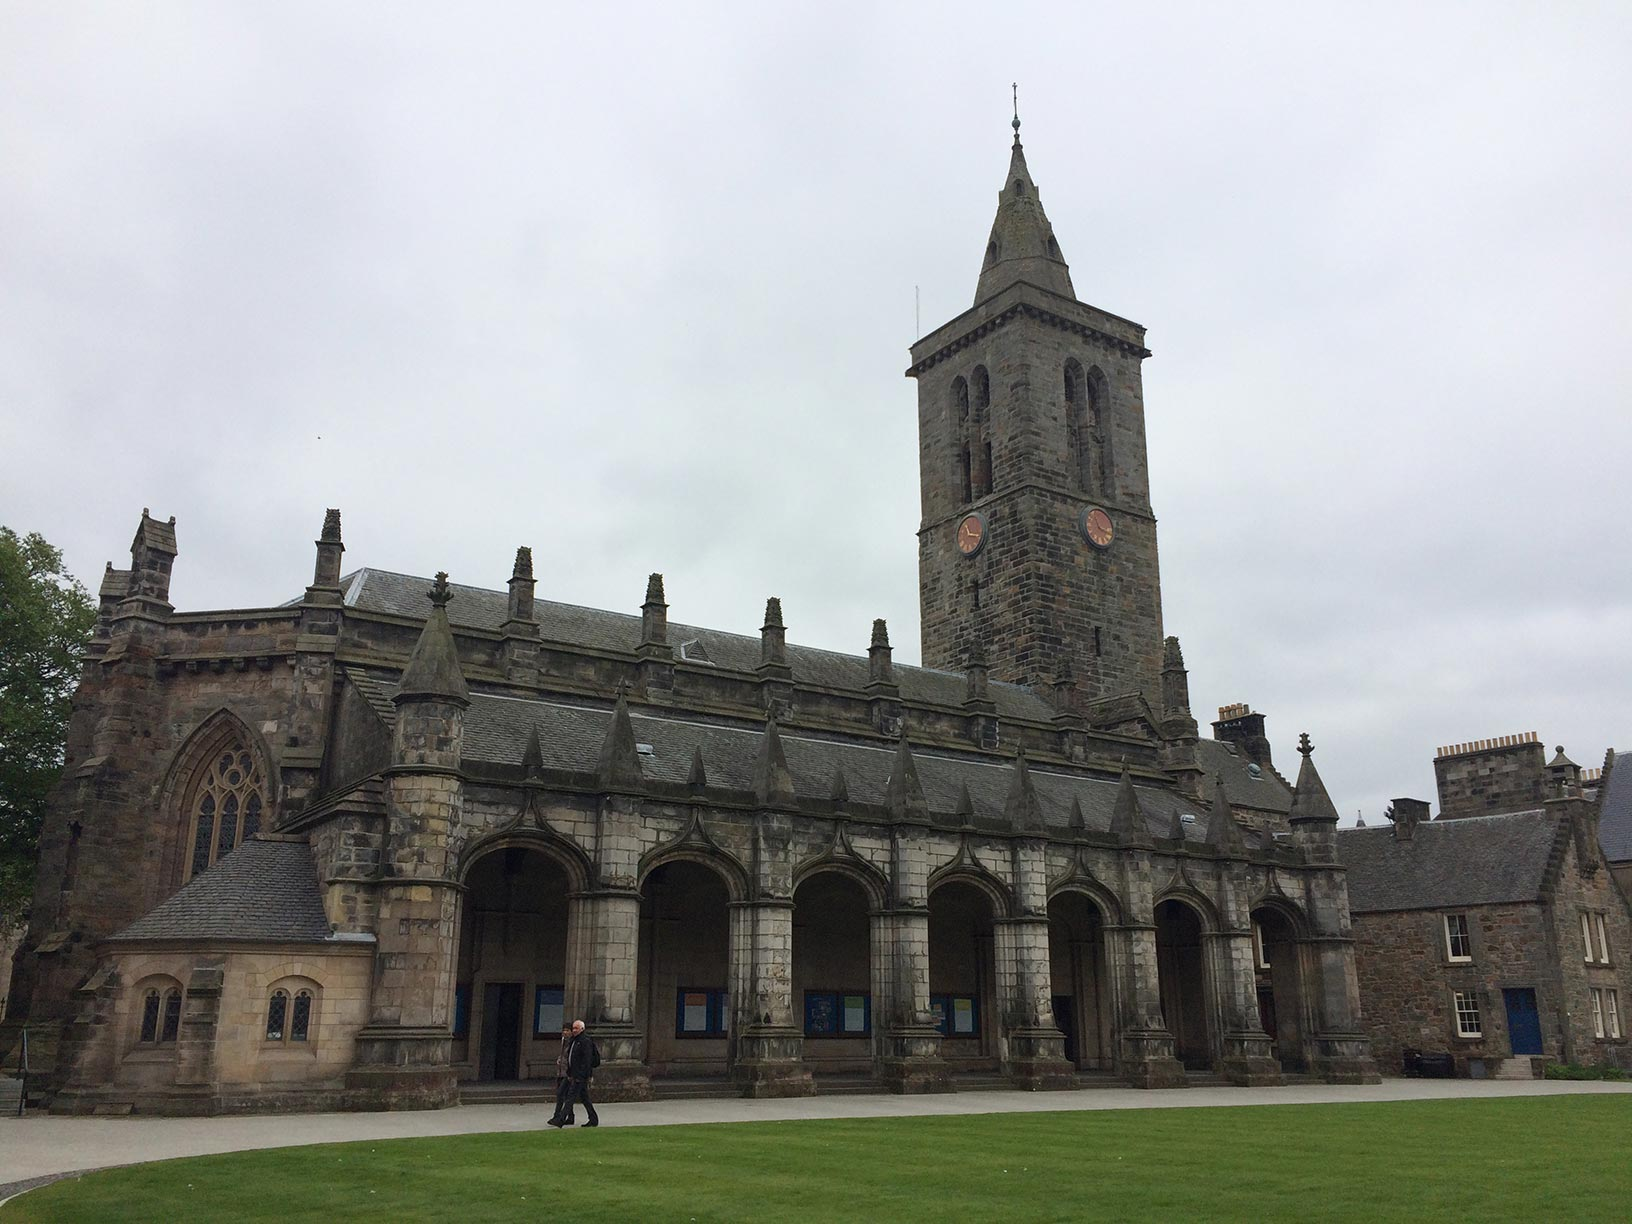 St. Salvator's cathedral on the quad of the University of St. Andrews.